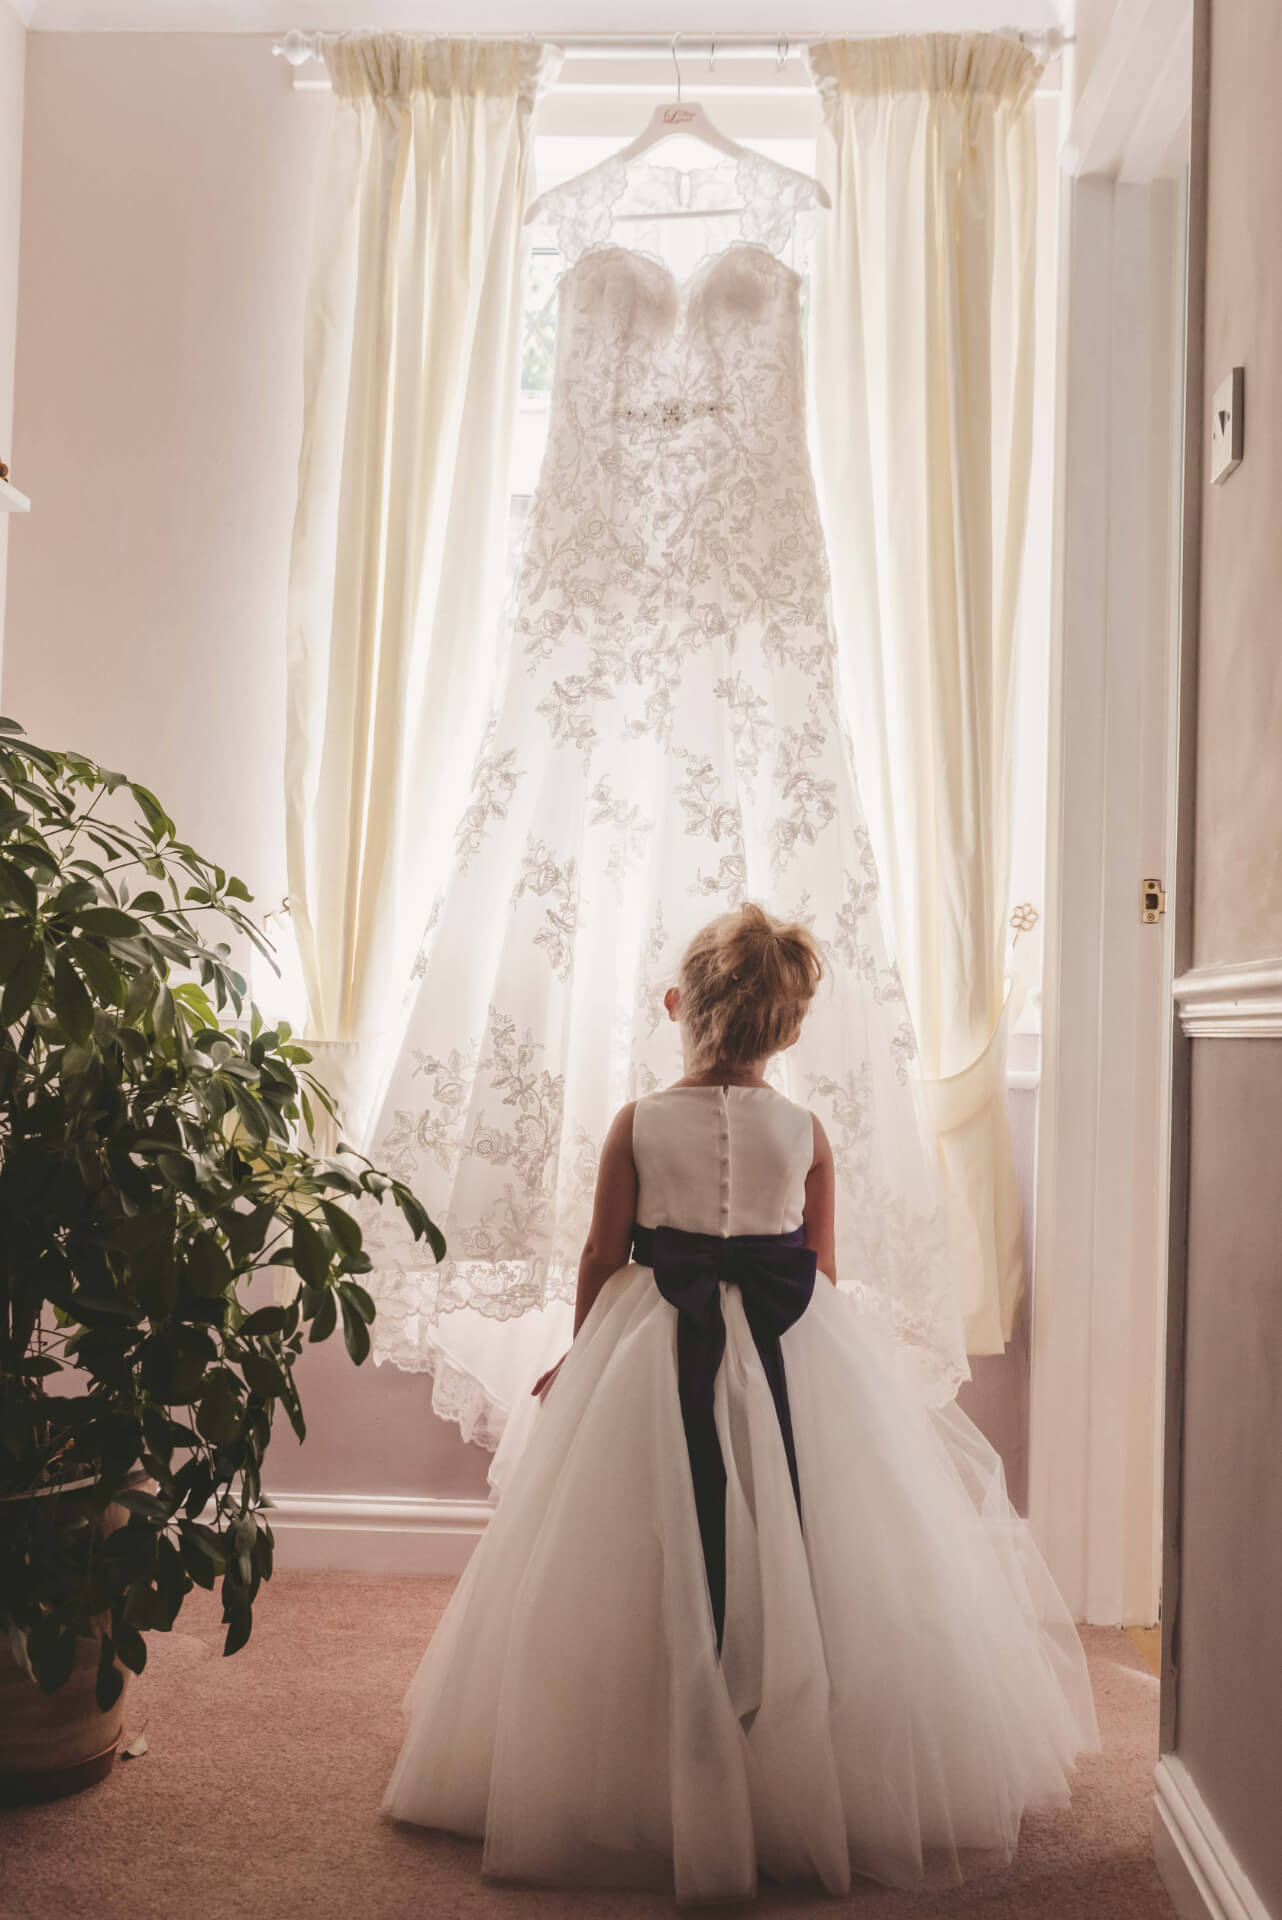 Flower girl admiring wedding dress - Reportage wedding photos by Lincolnshire wedding photographer, Slice of Life Photography